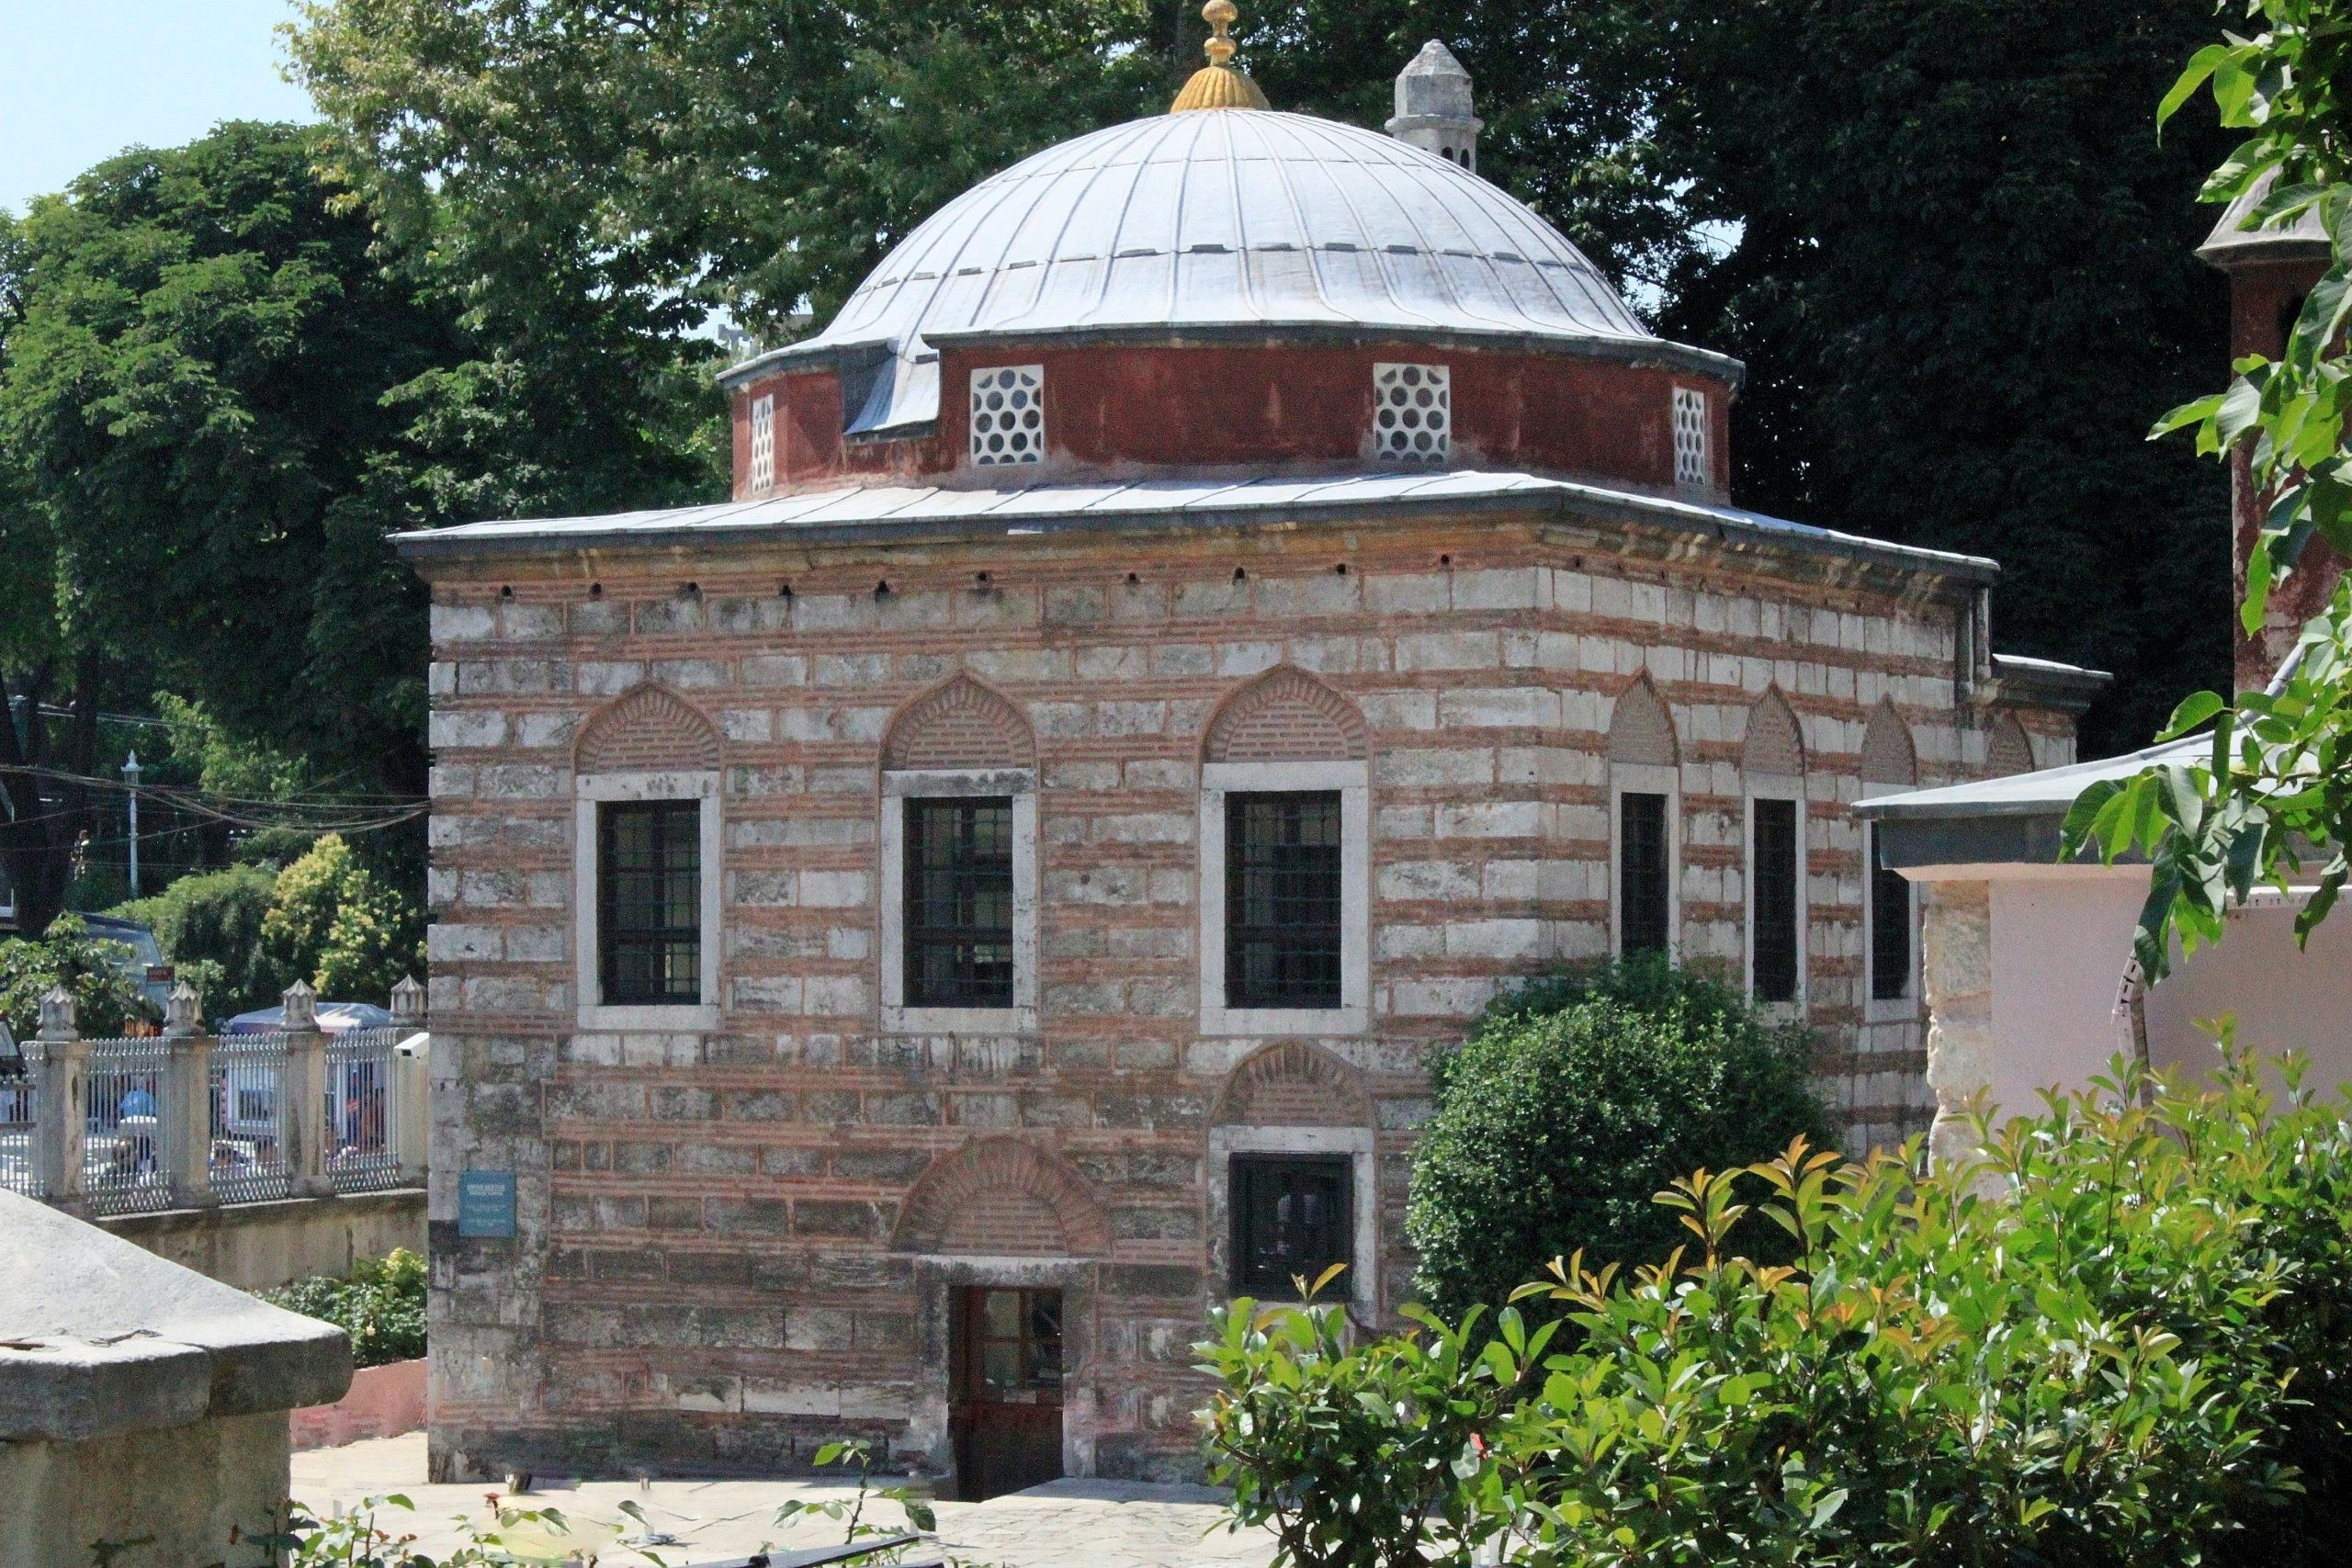 Istanbul: Hagia Sophia madrasa Sultan Mahmud I had a madrasa (Koranic school) built on the grounds of the Hagia Sophia in 1740.